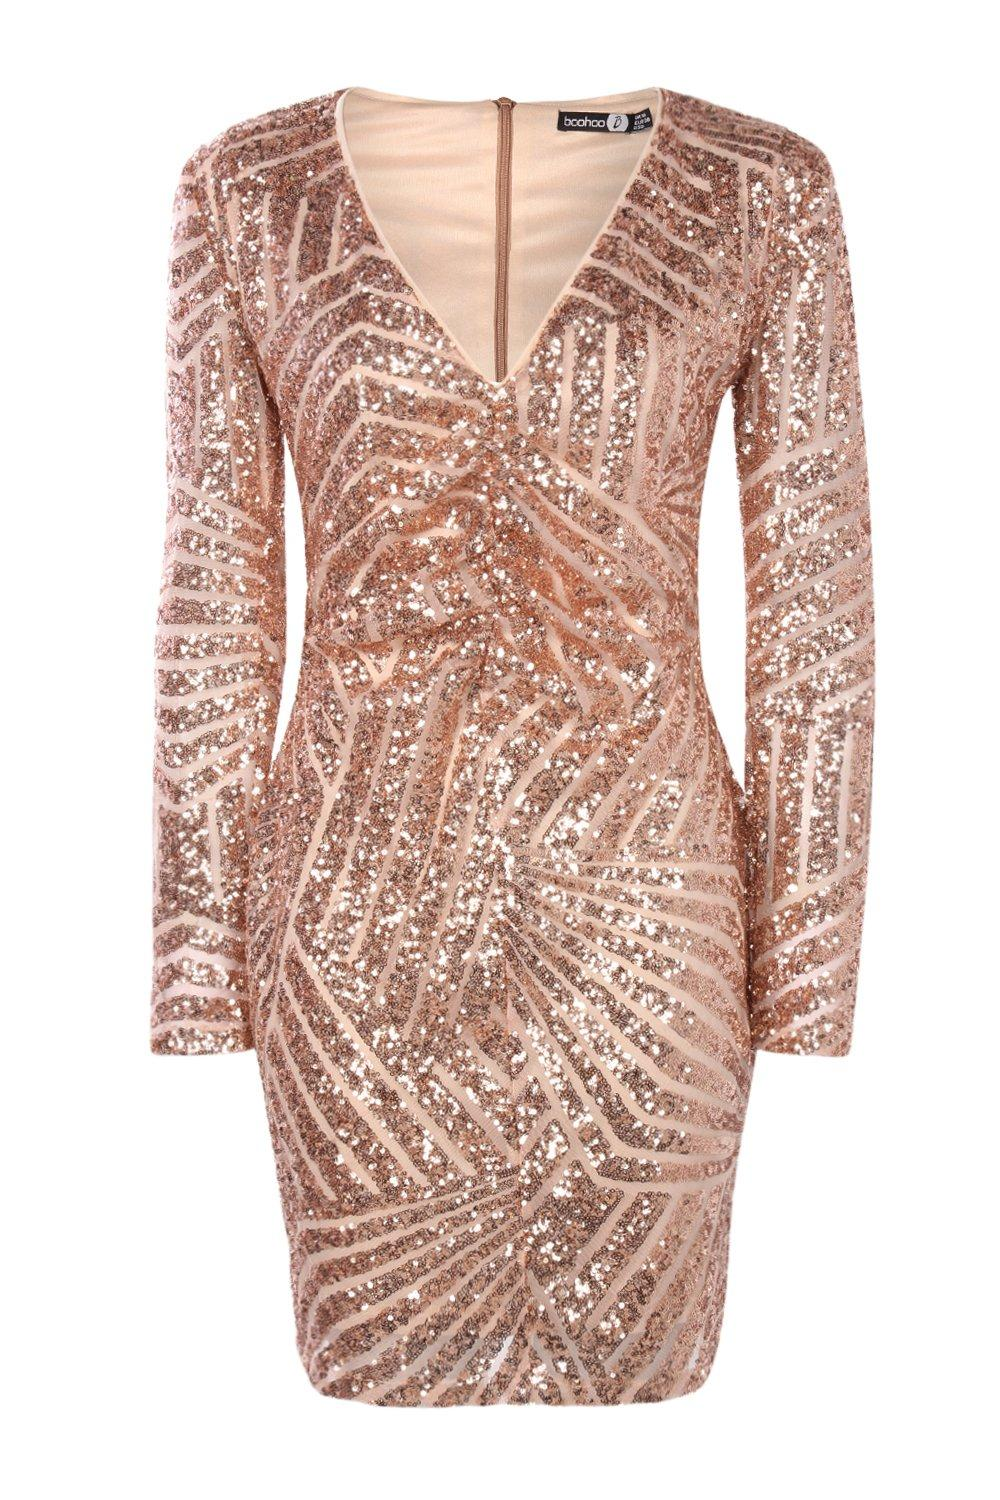 nude-boutique--sequin-panelled-bodycon-dress